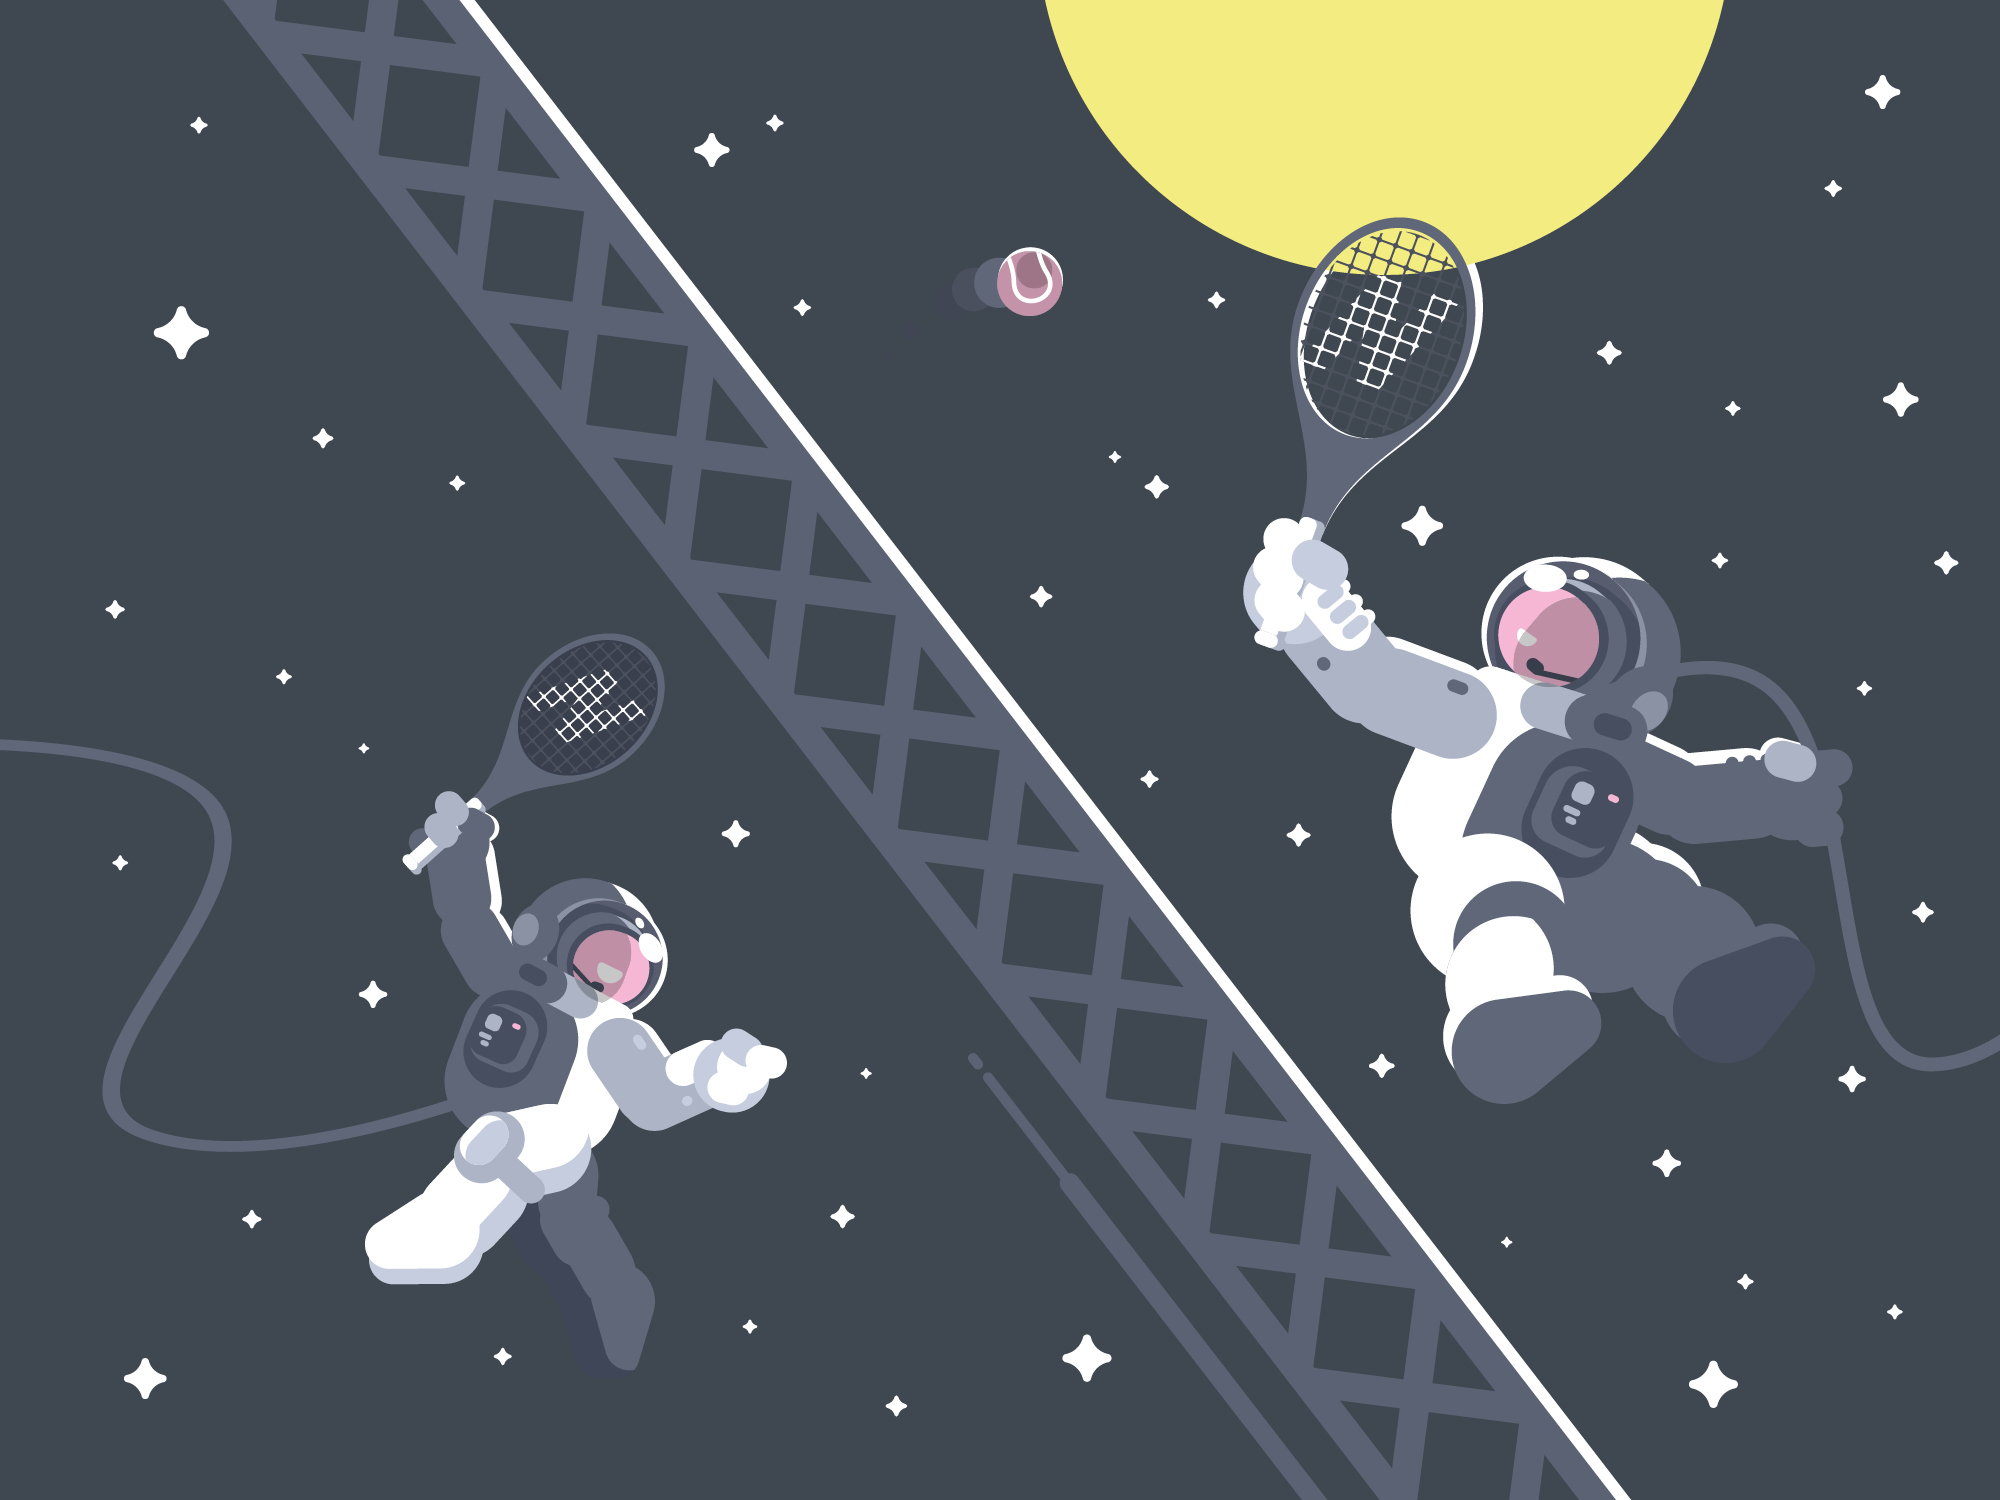 Tennis_in_the_space_iStock-912890178_2000px